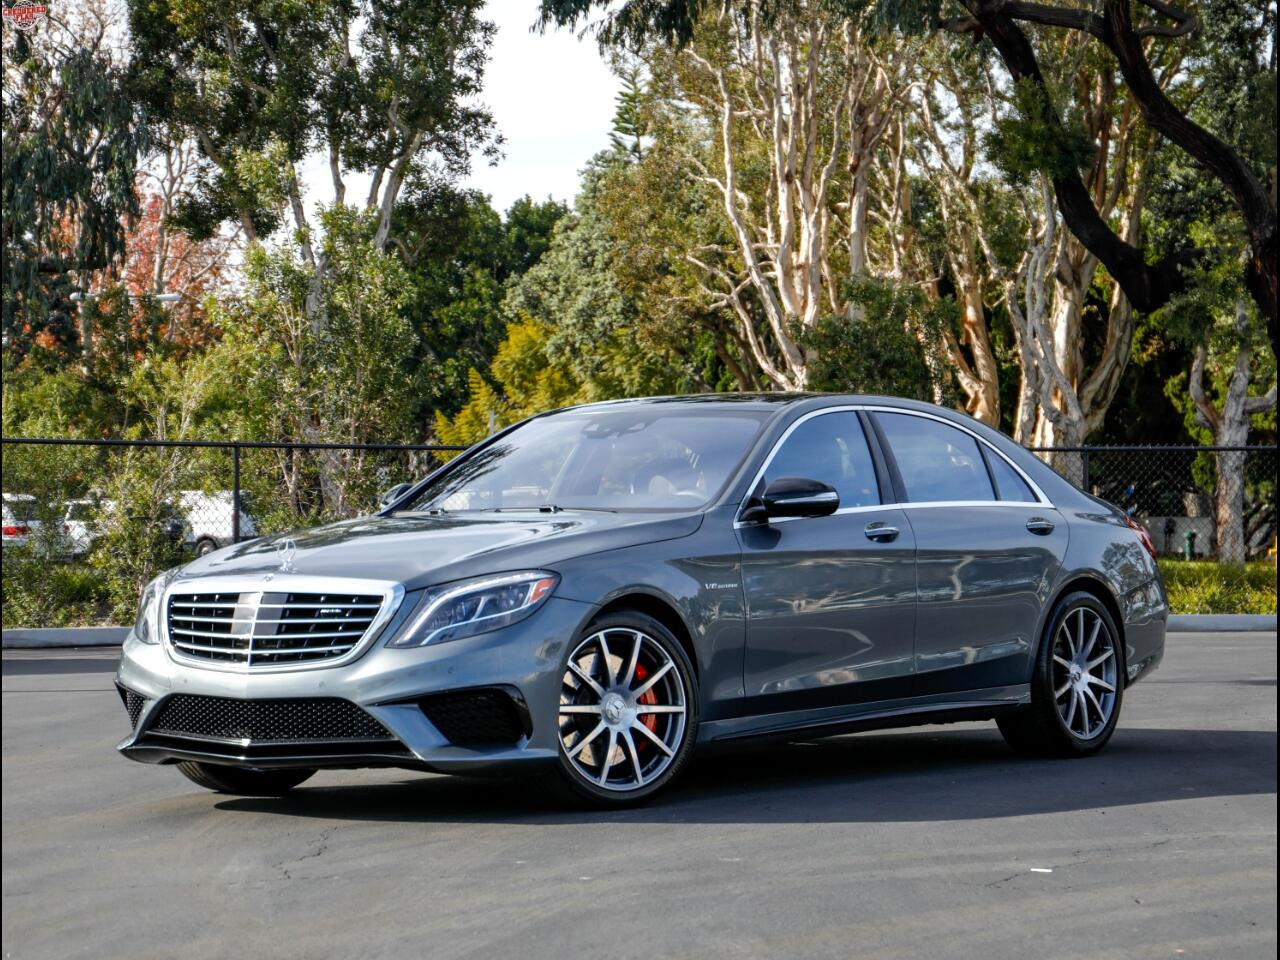 2017 Mercedes-Benz S63 AMG 4Matic